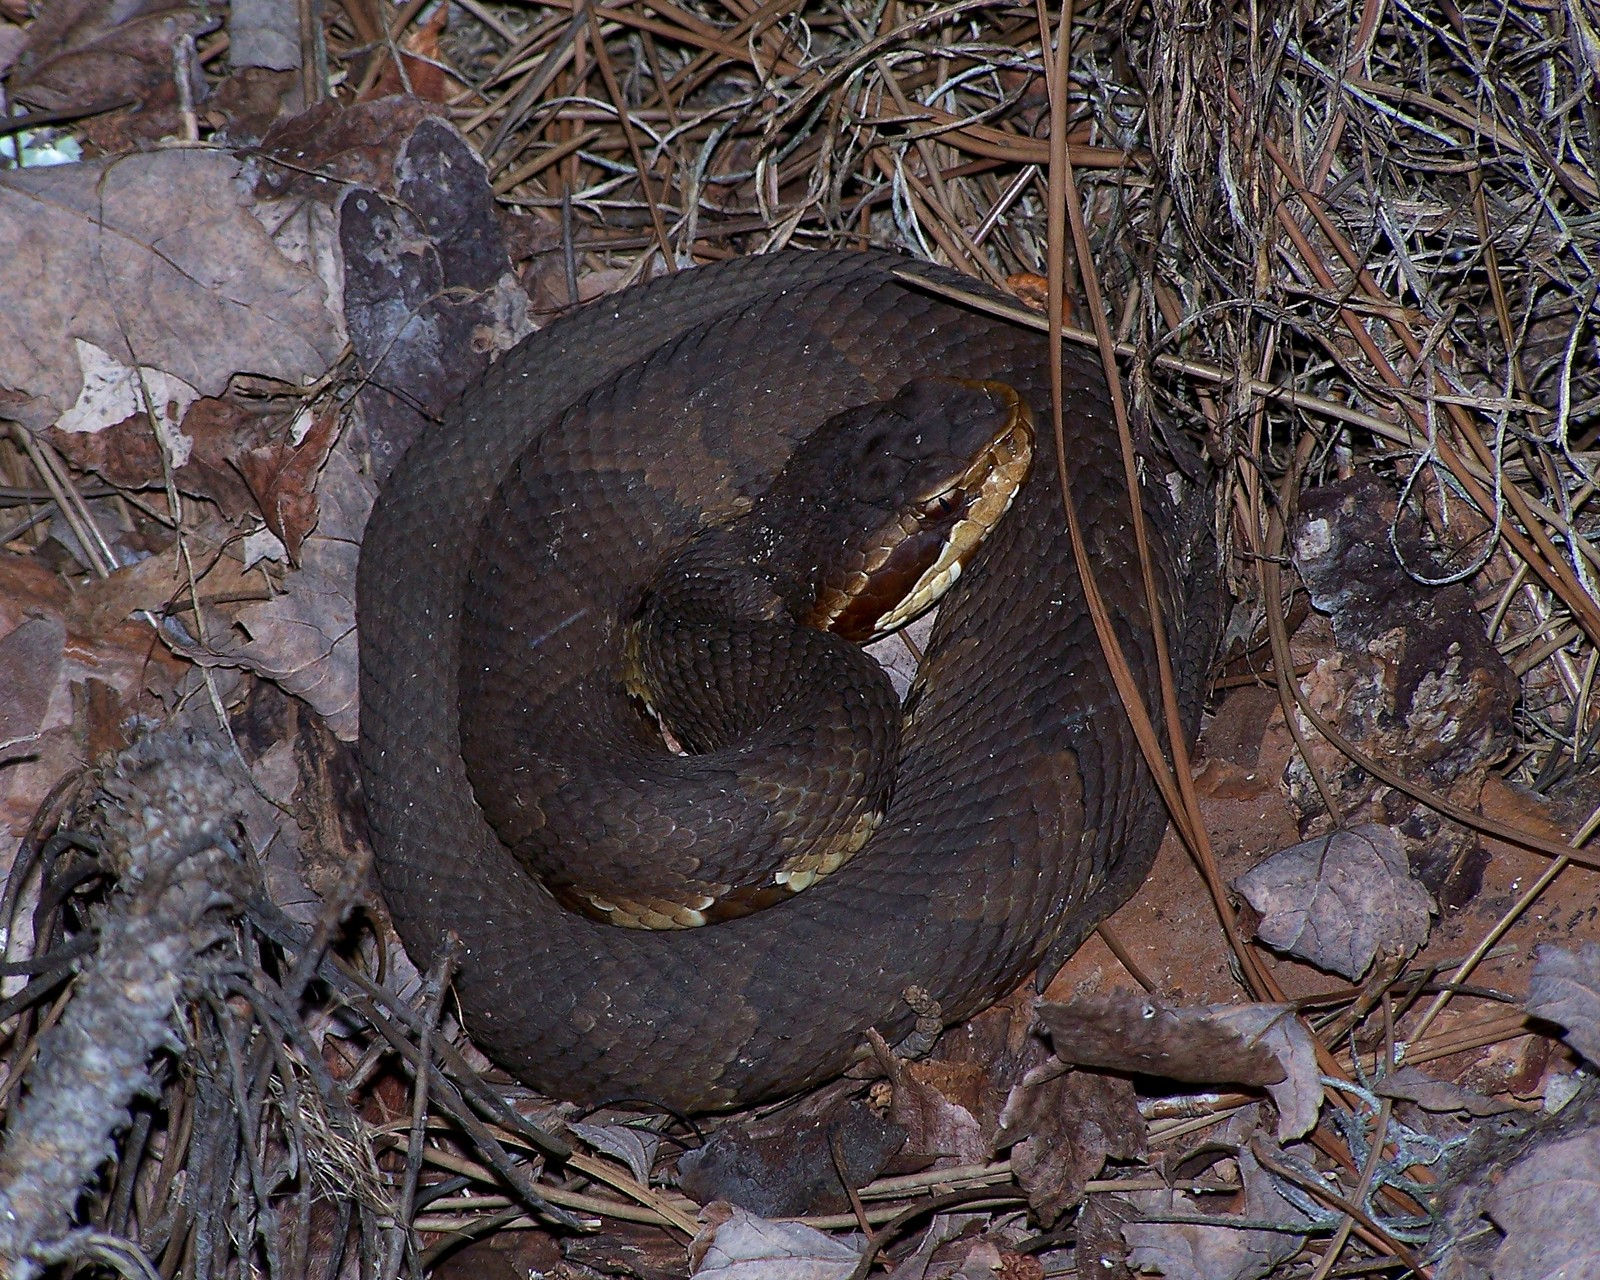 Coiled Cottonmouth Snake